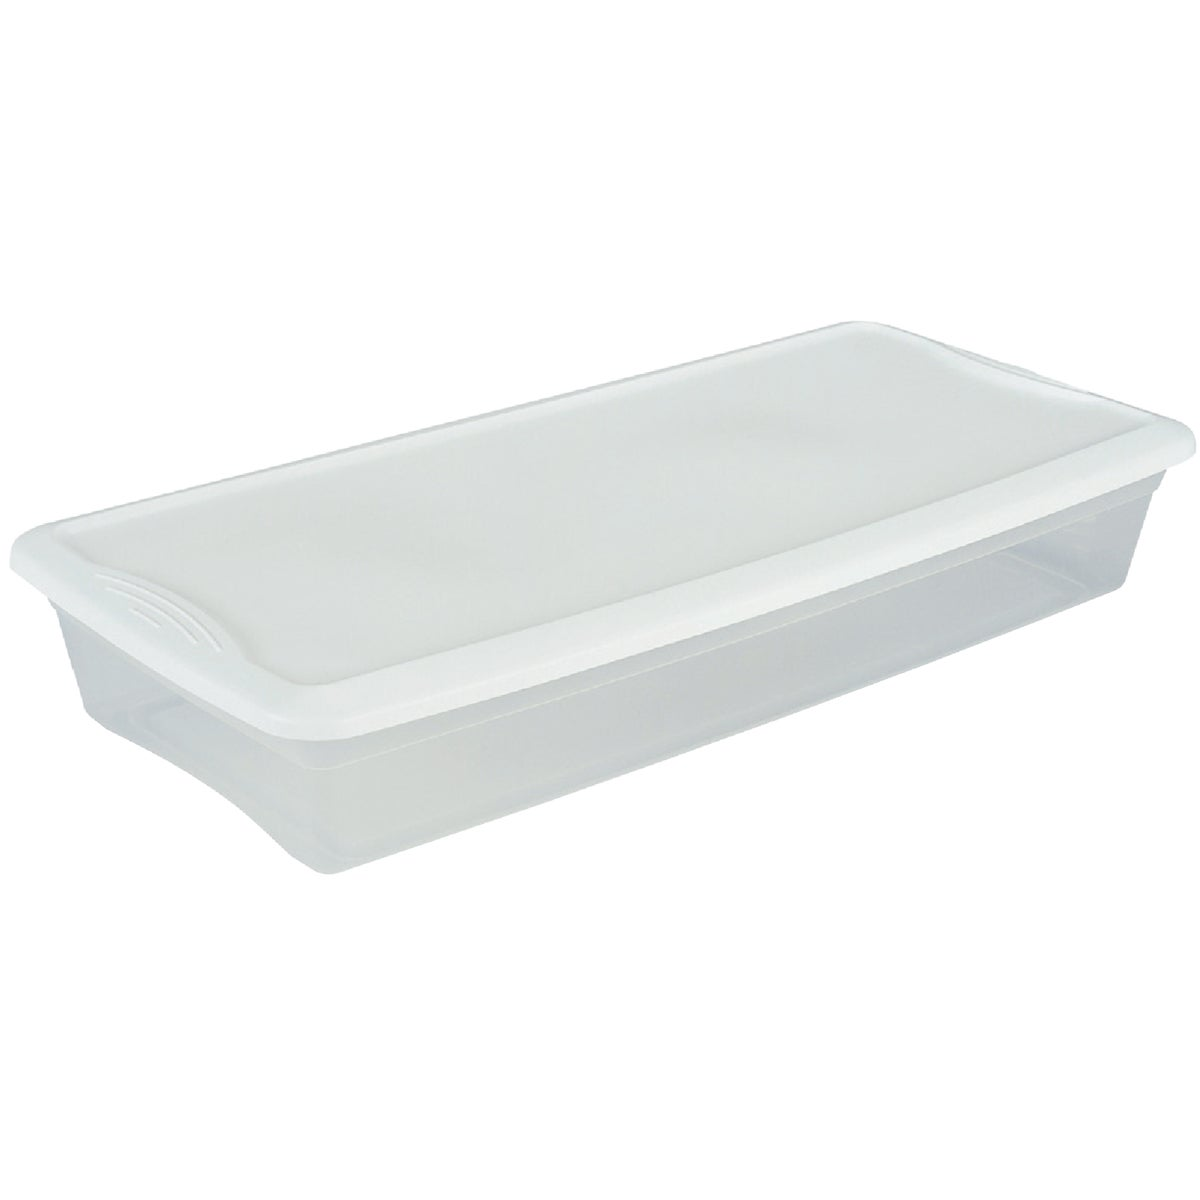 41 QUART UNDERBED BOX